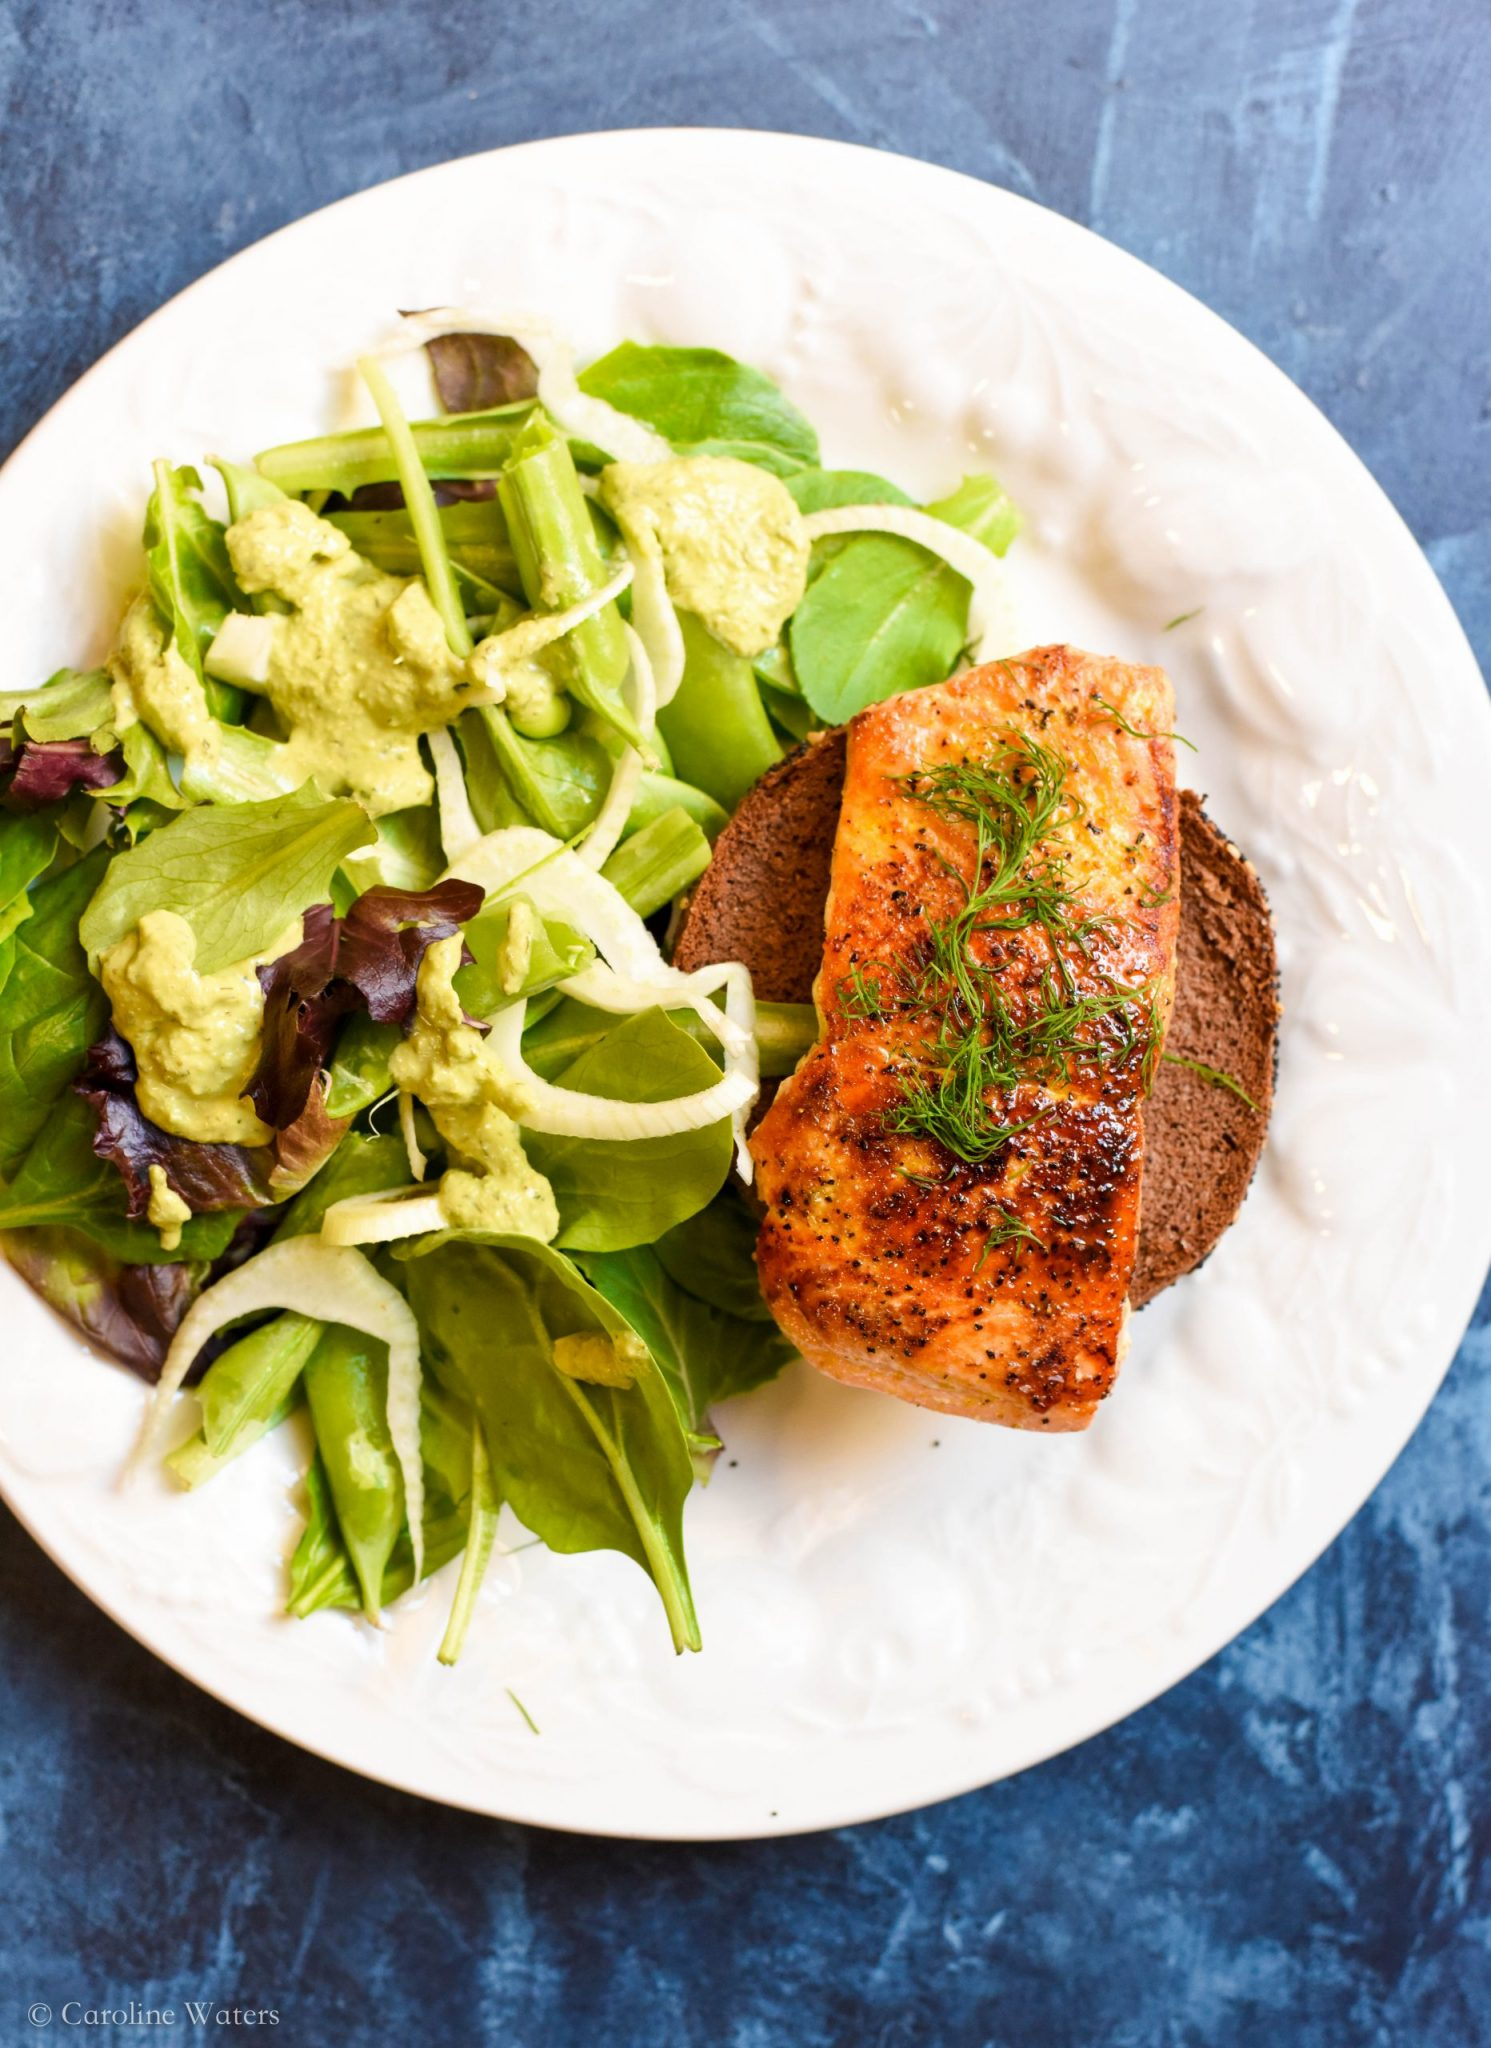 savory-salmon-and-greens-salad